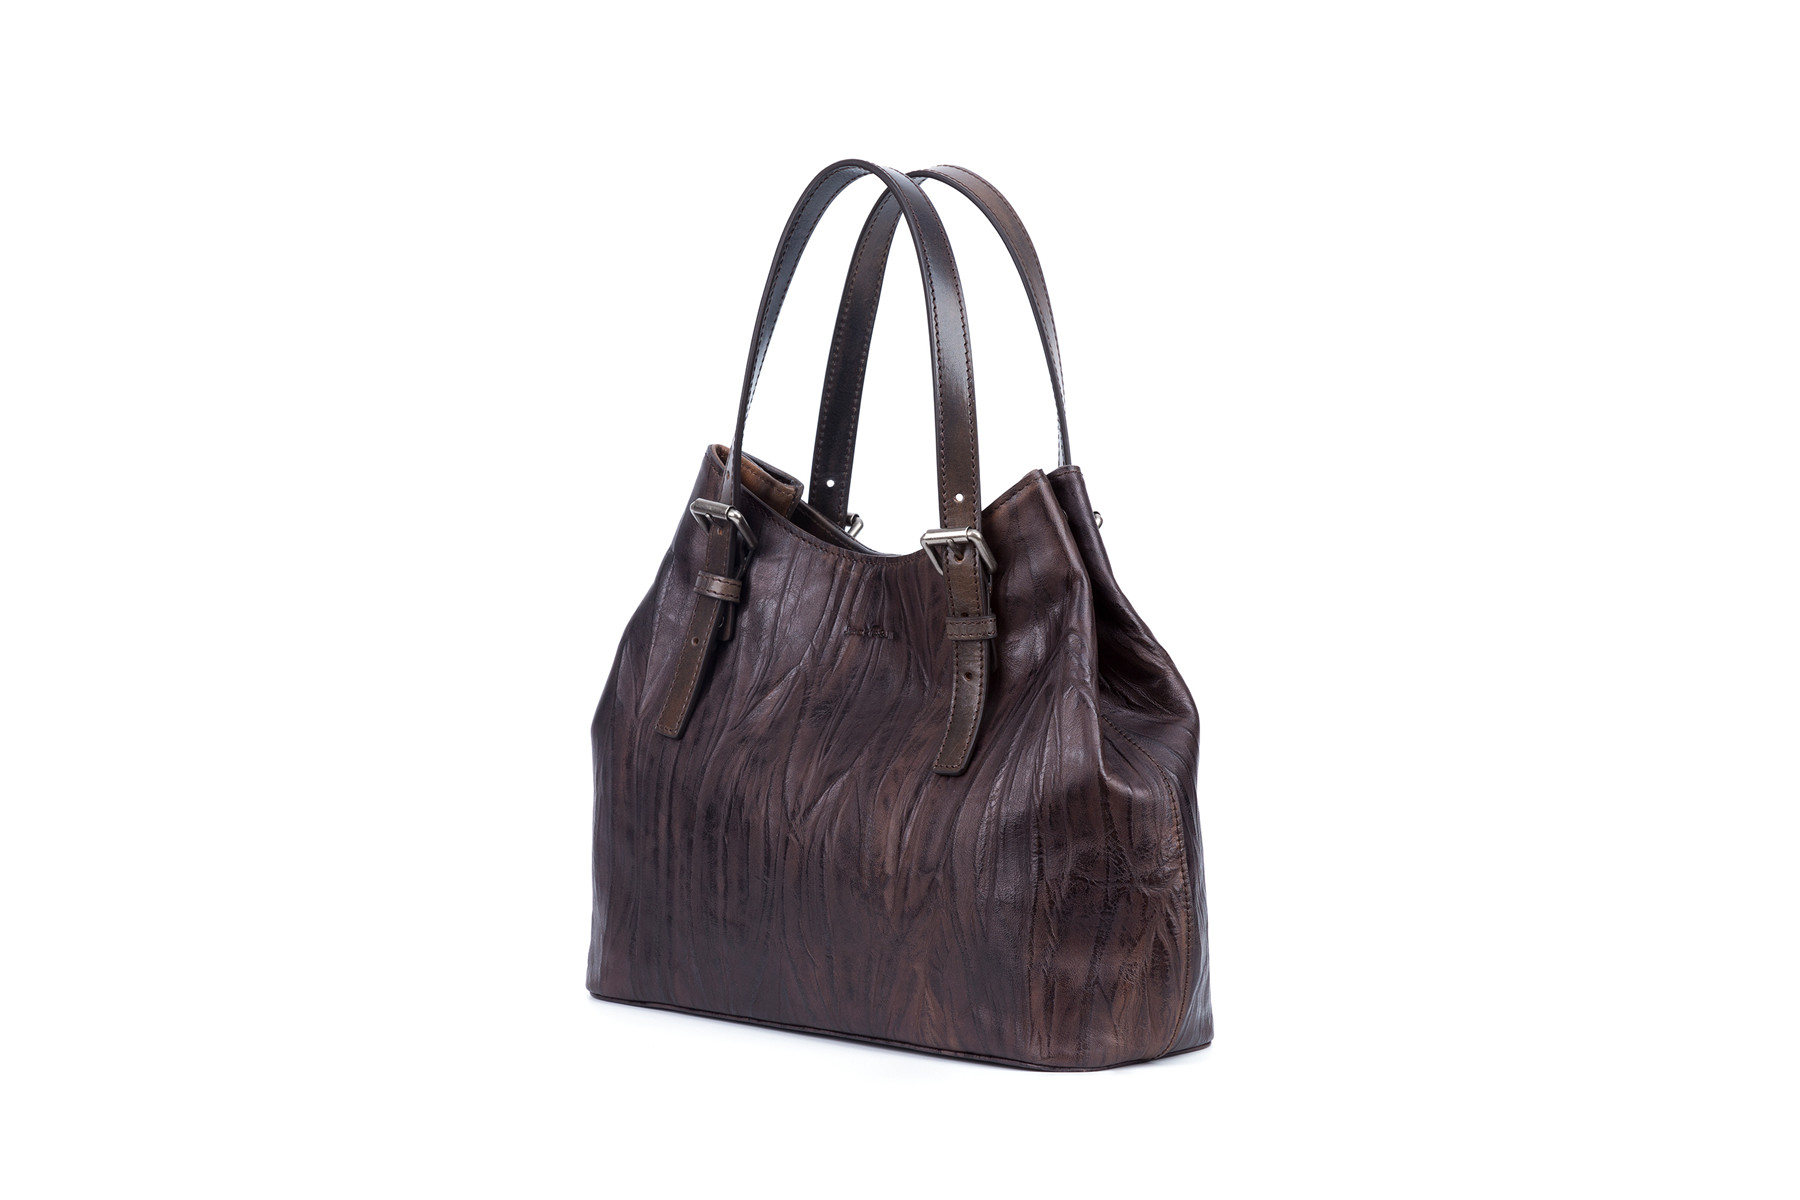 GF bags top latest handbags crocodile for ladies-6